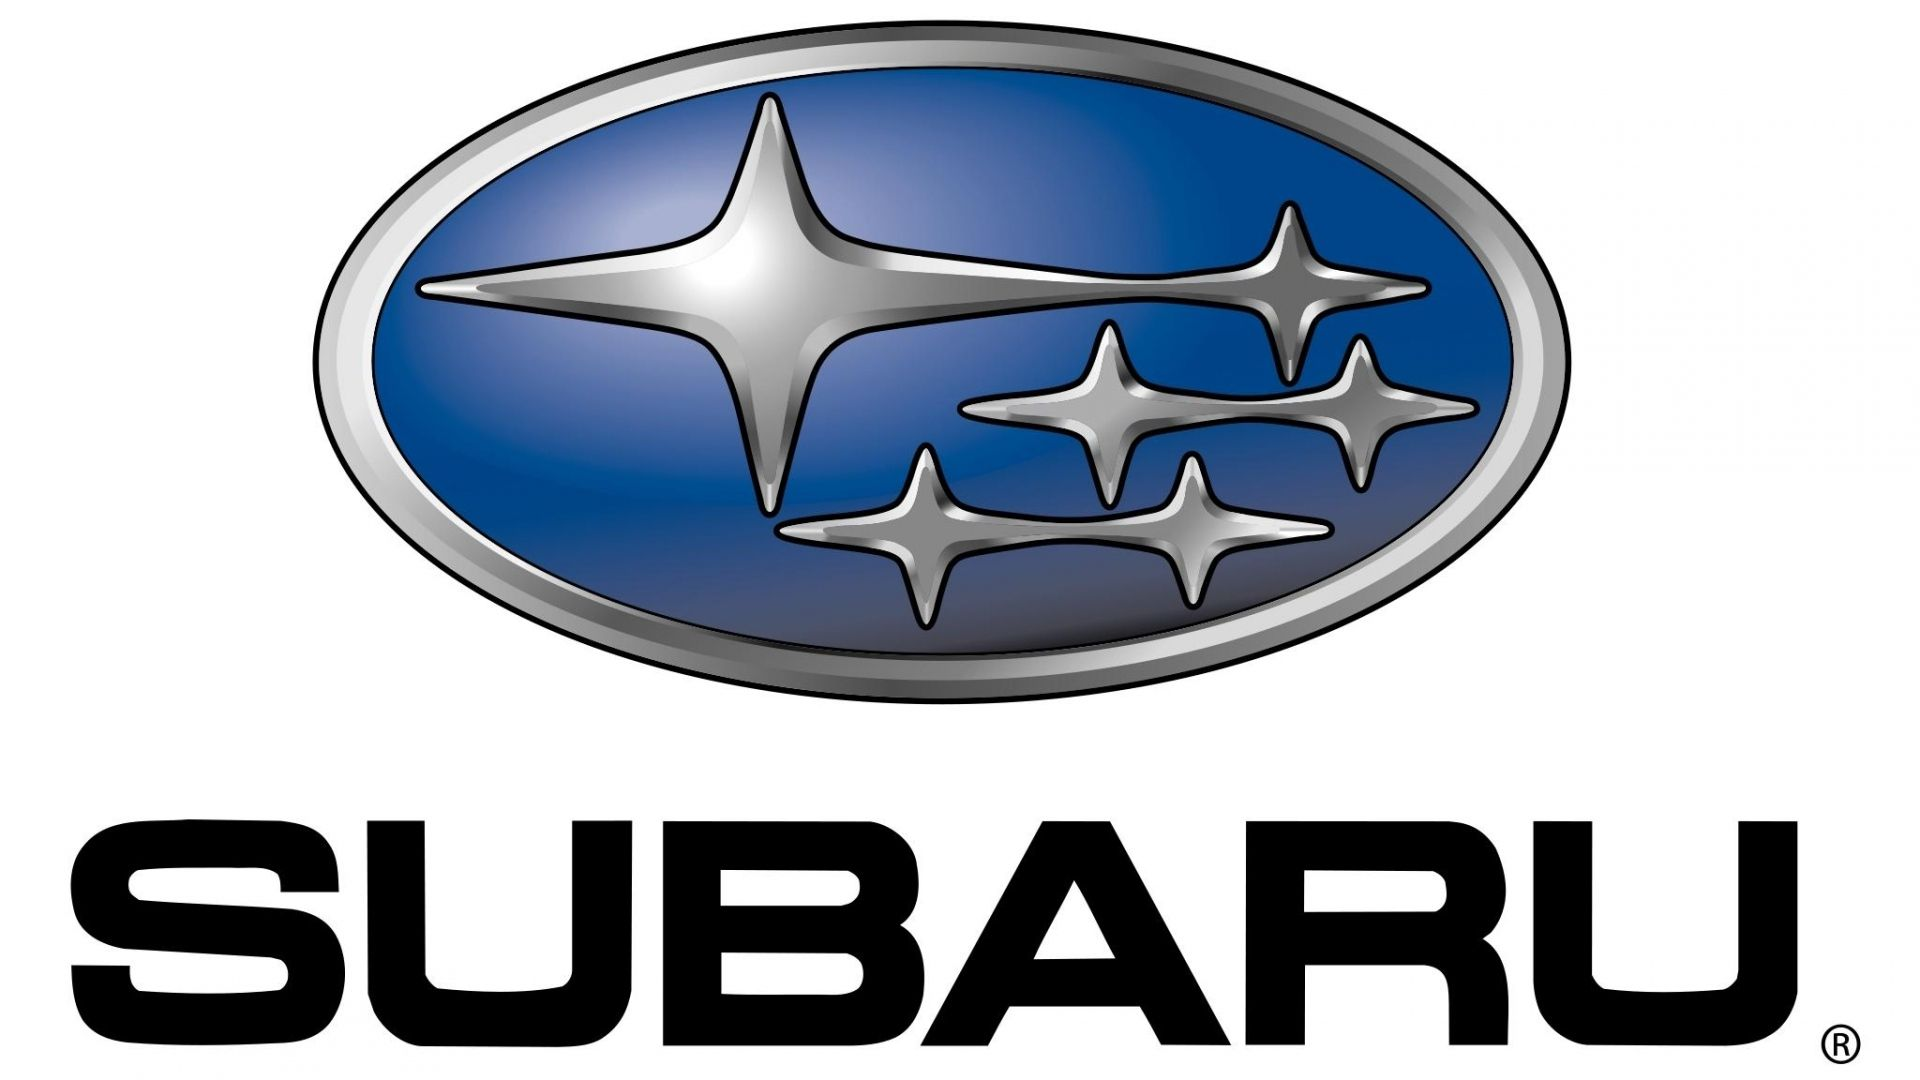 Subaru Service in Chapel Hill